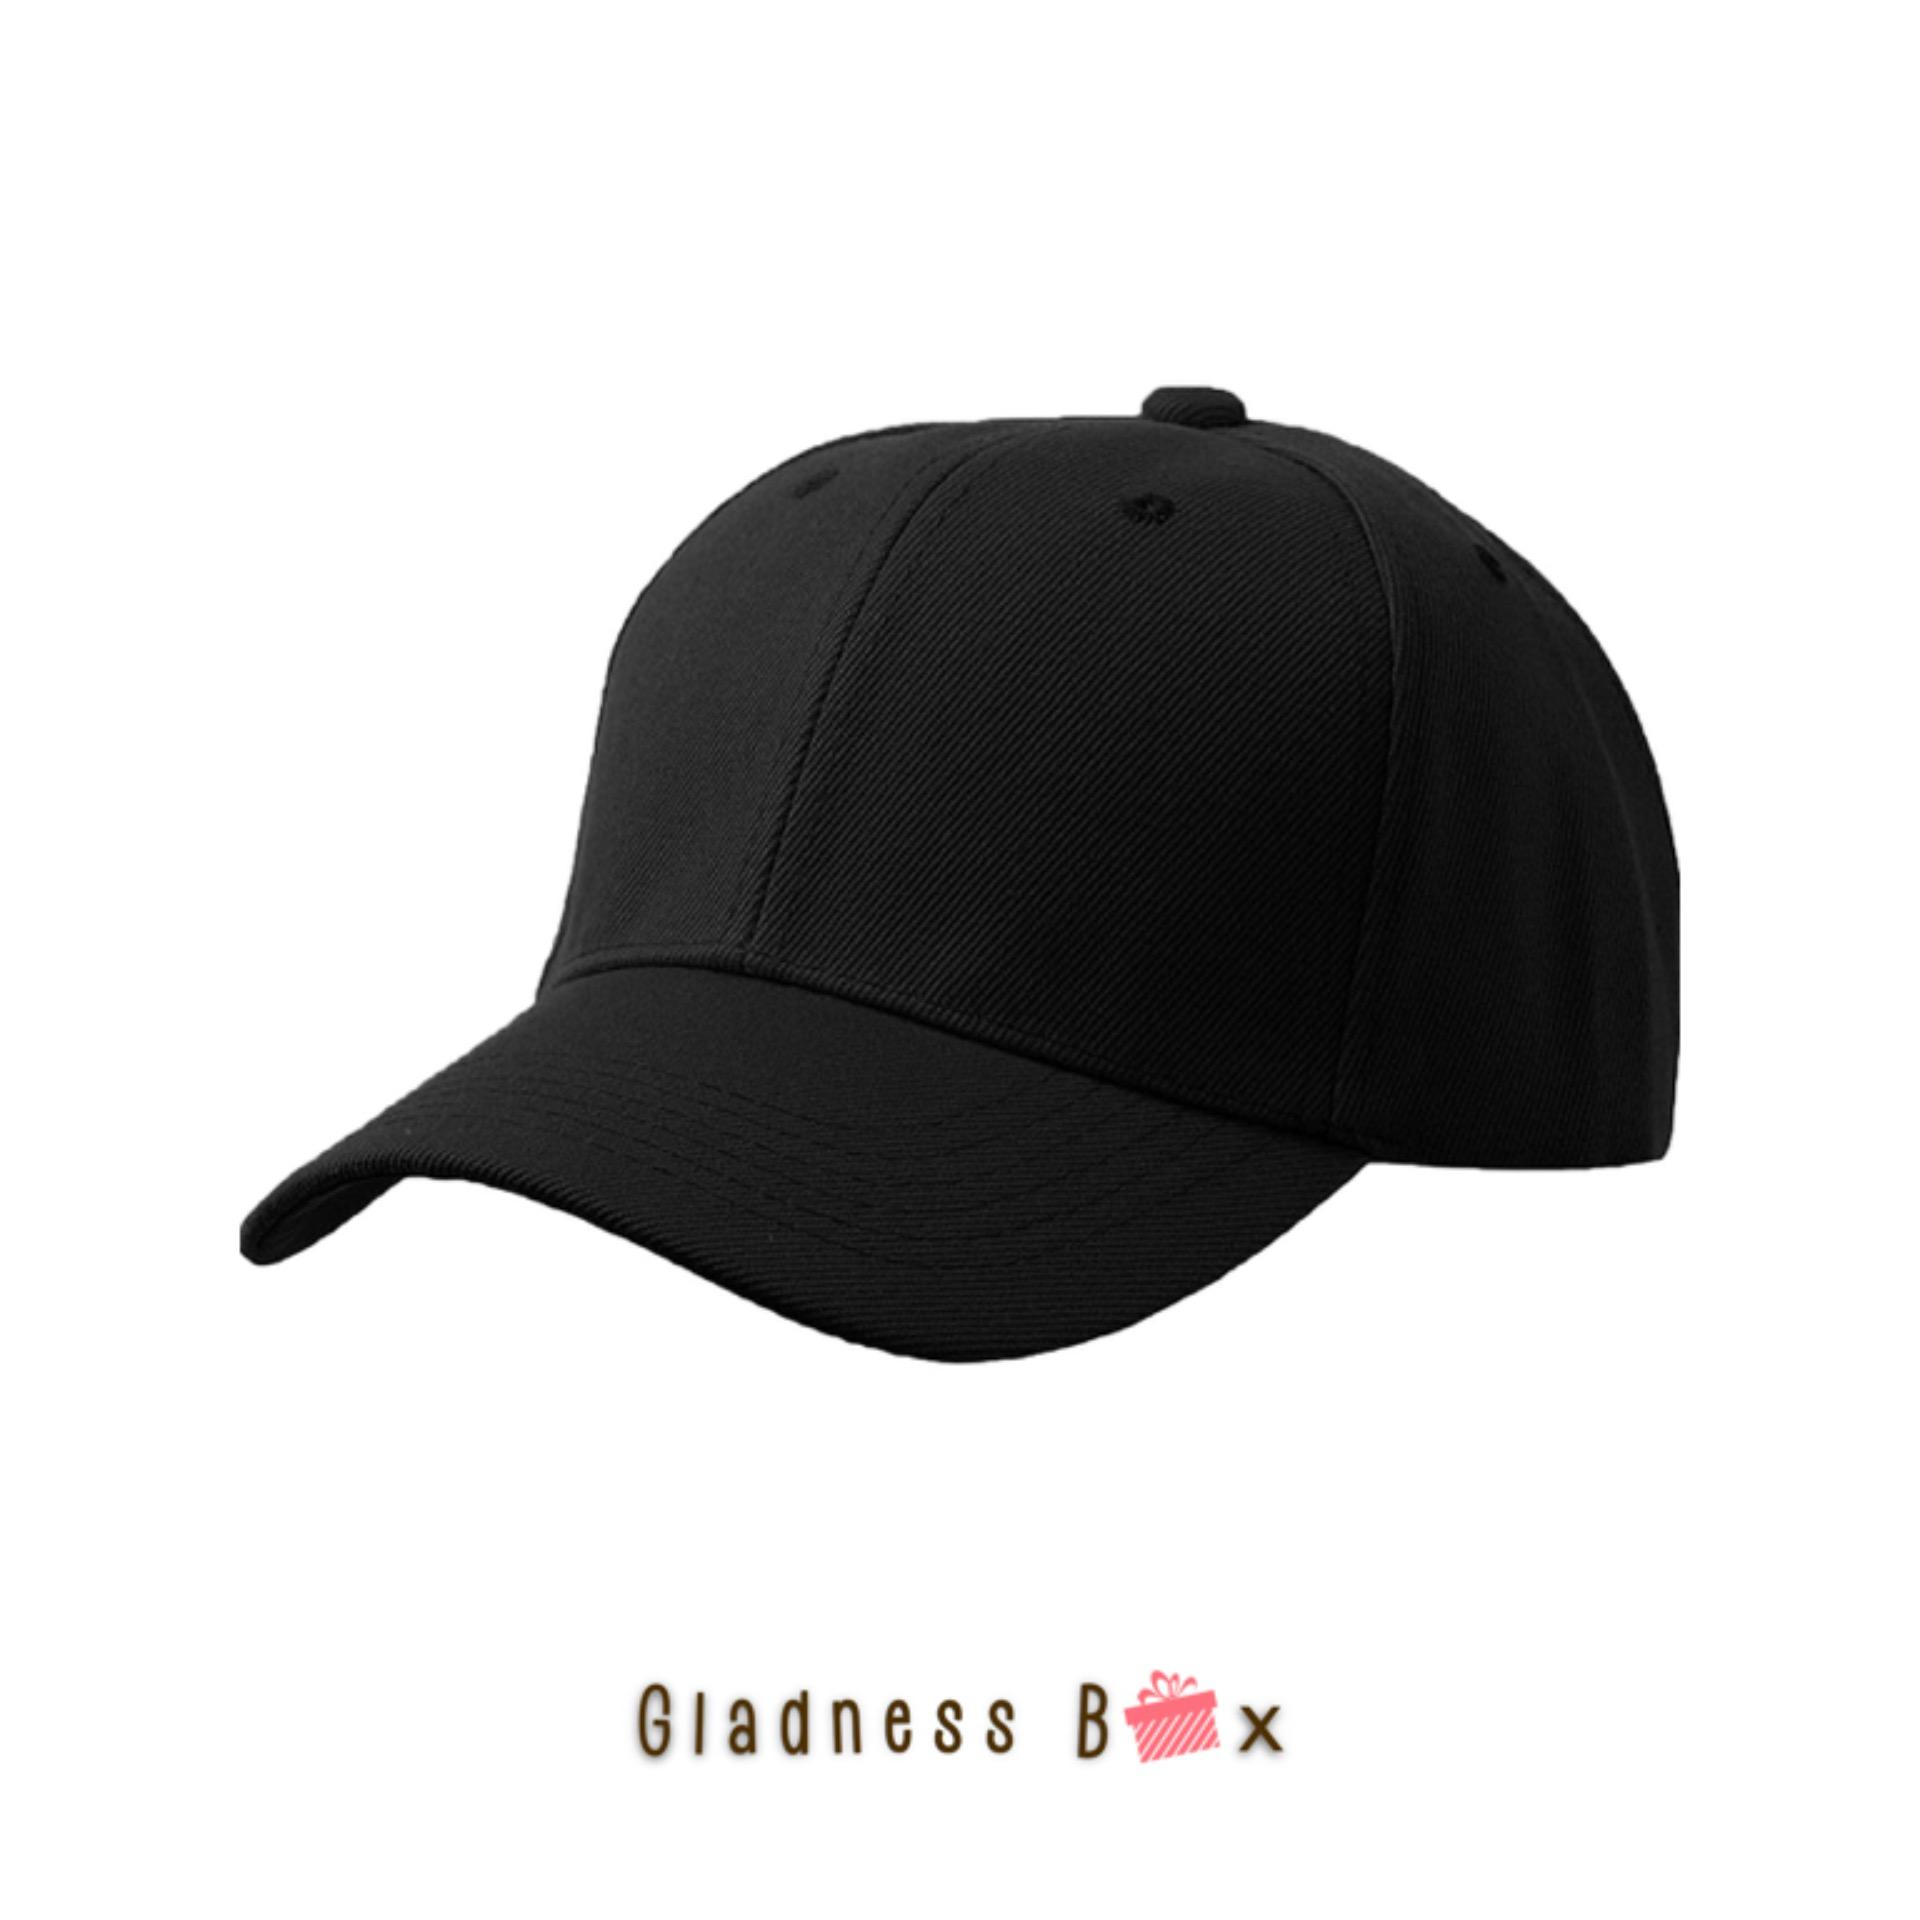 d5cb435b4 Gladness Box High Quality Plain Baseball Cap for Men/Women/Unisex